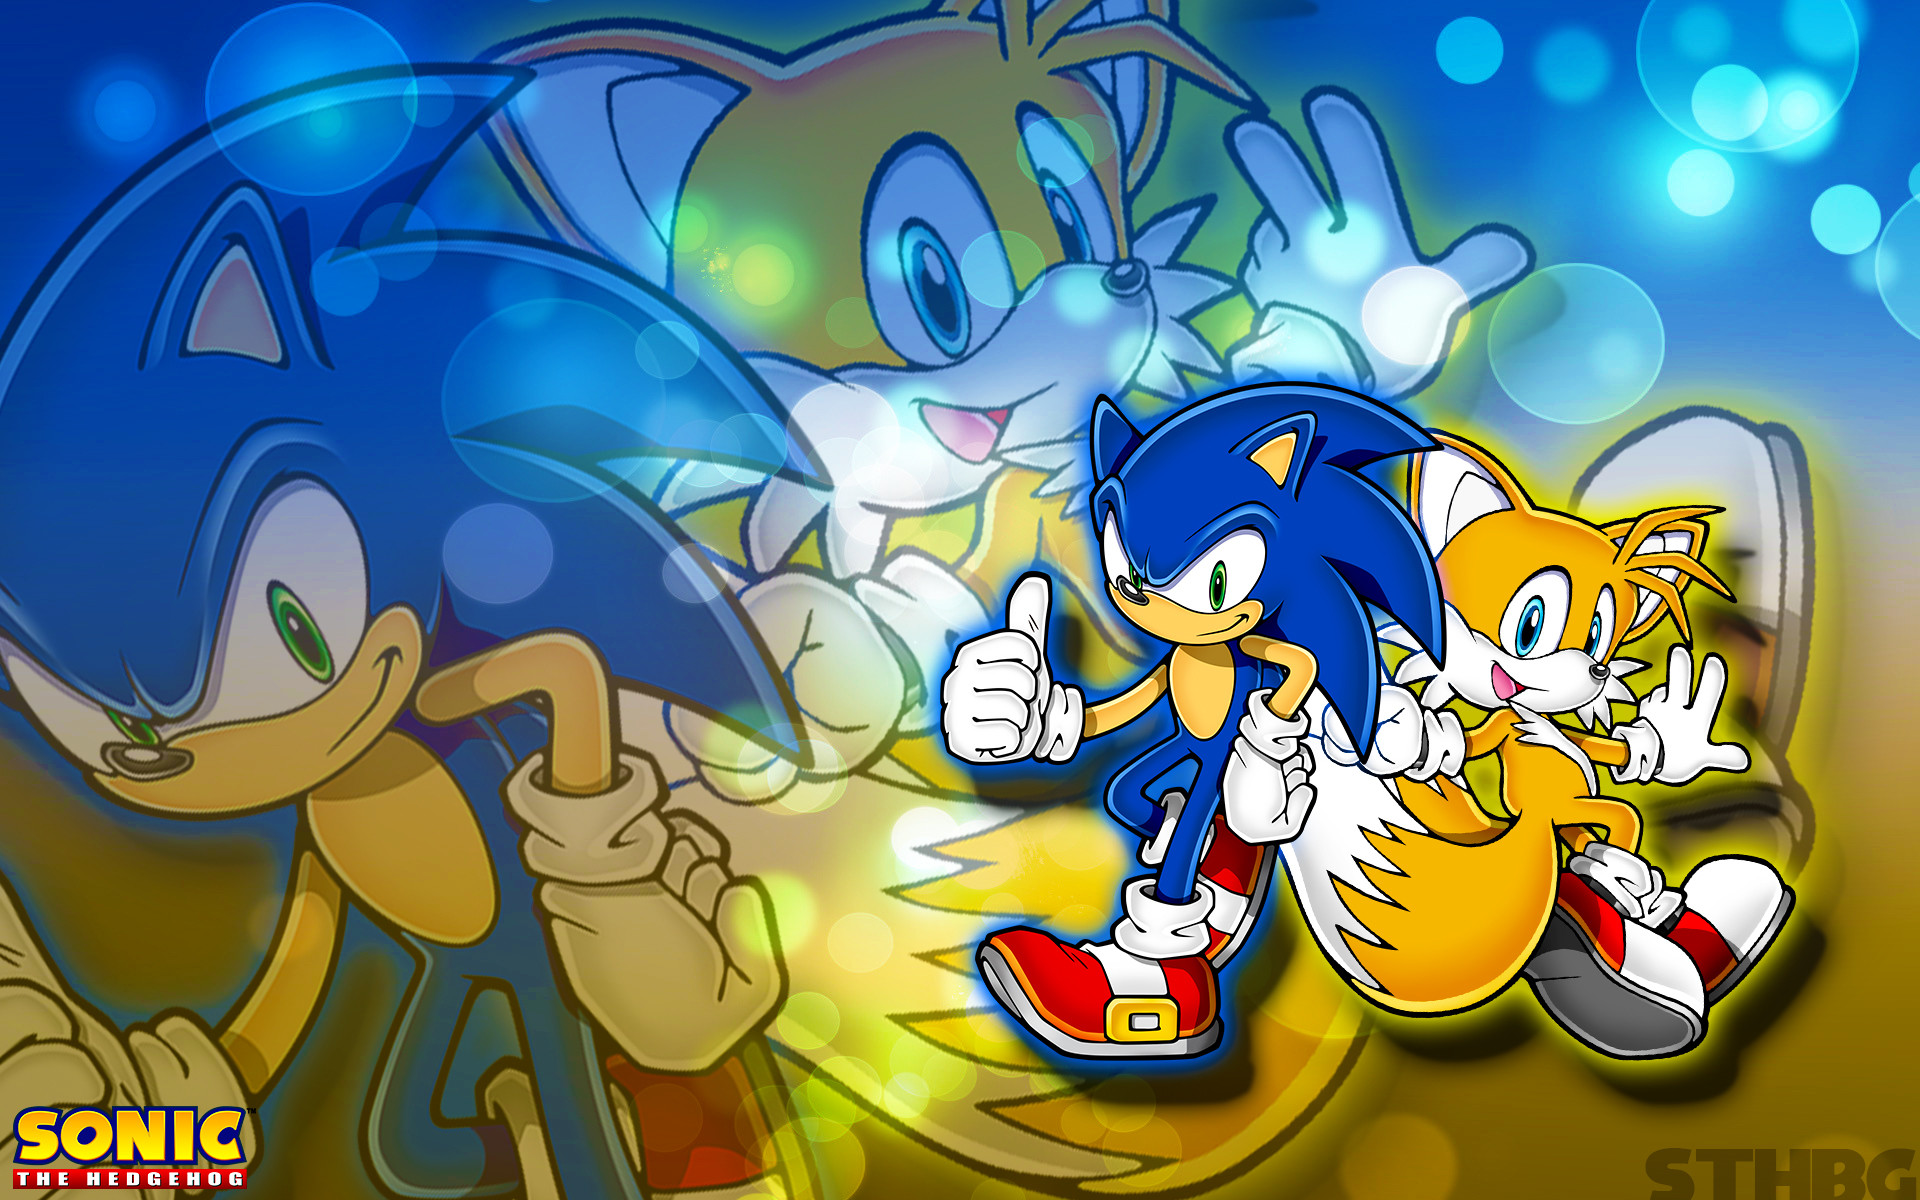 1920x1200 Sonic And Tails Wallpaper by SonicTheHedgehogBG Sonic And Tails Wallpaper  by SonicTheHedgehogBG